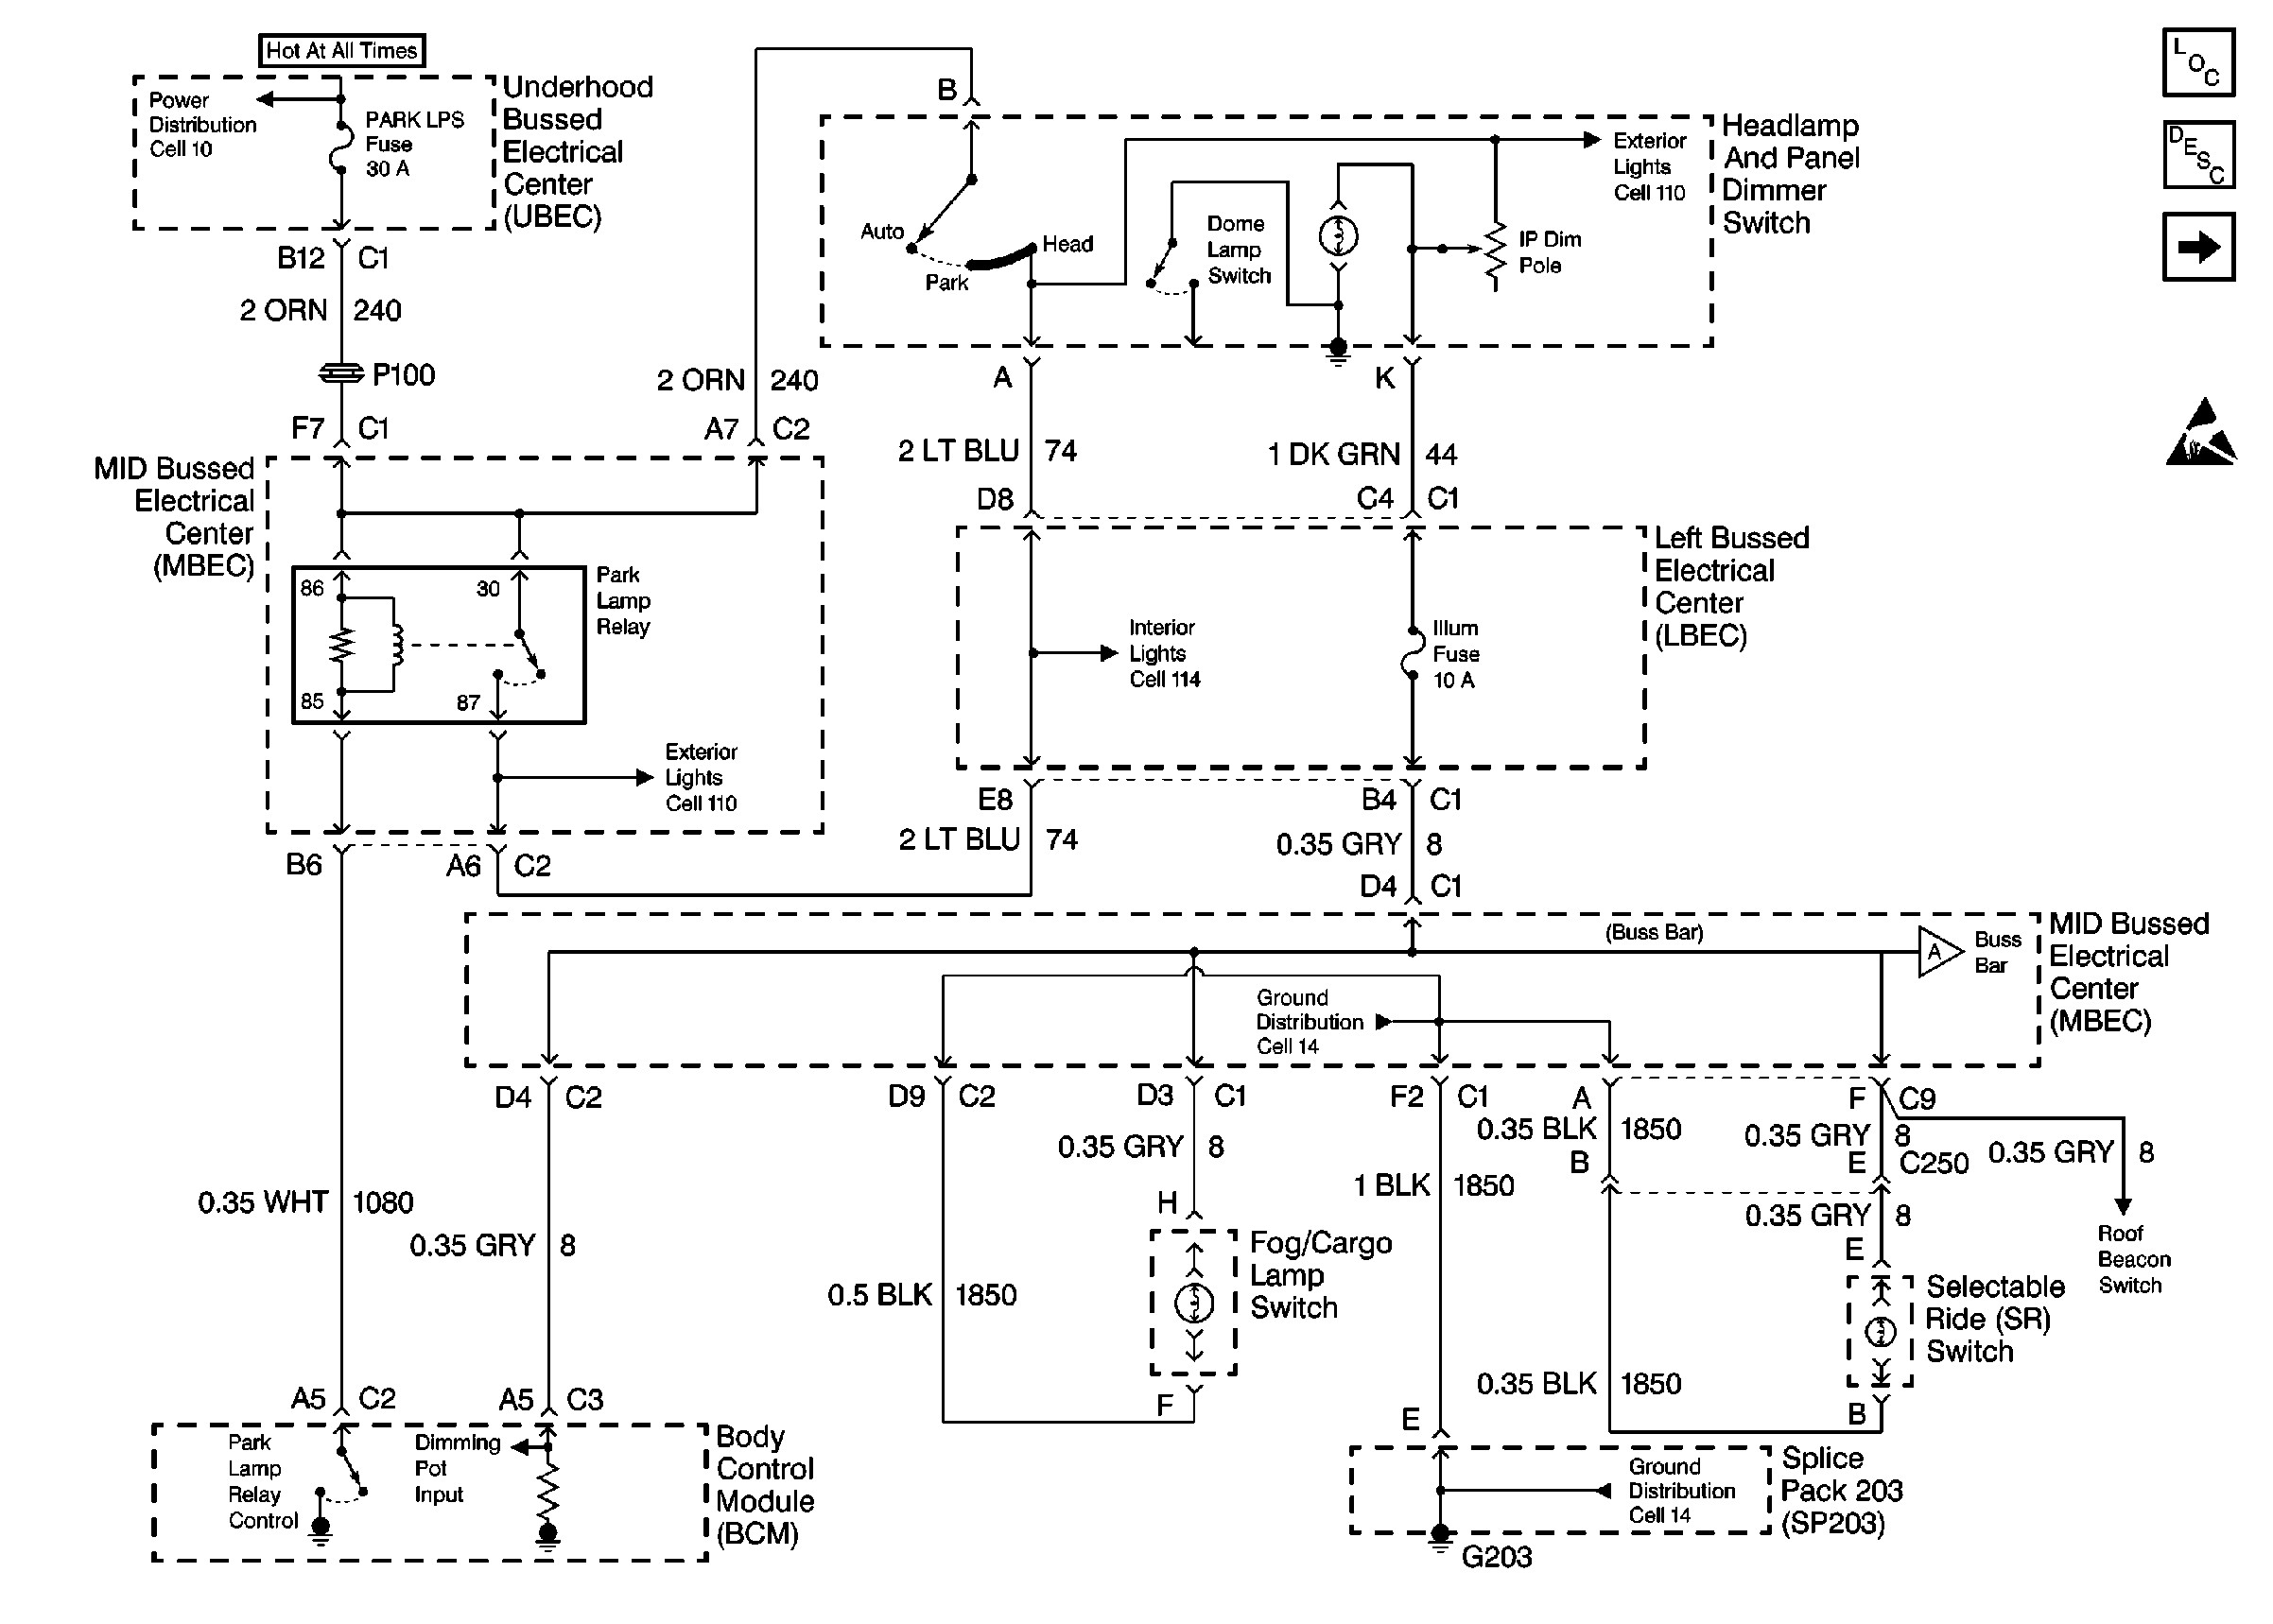 wiring diagrams 2003 chevy 1500hd design of electrical circuitwiring diagrams 2003 chevy 1500hd wiring diagram pmz 2003 chevy fuel pump wiring diagrams 2003 chevy 1500hd